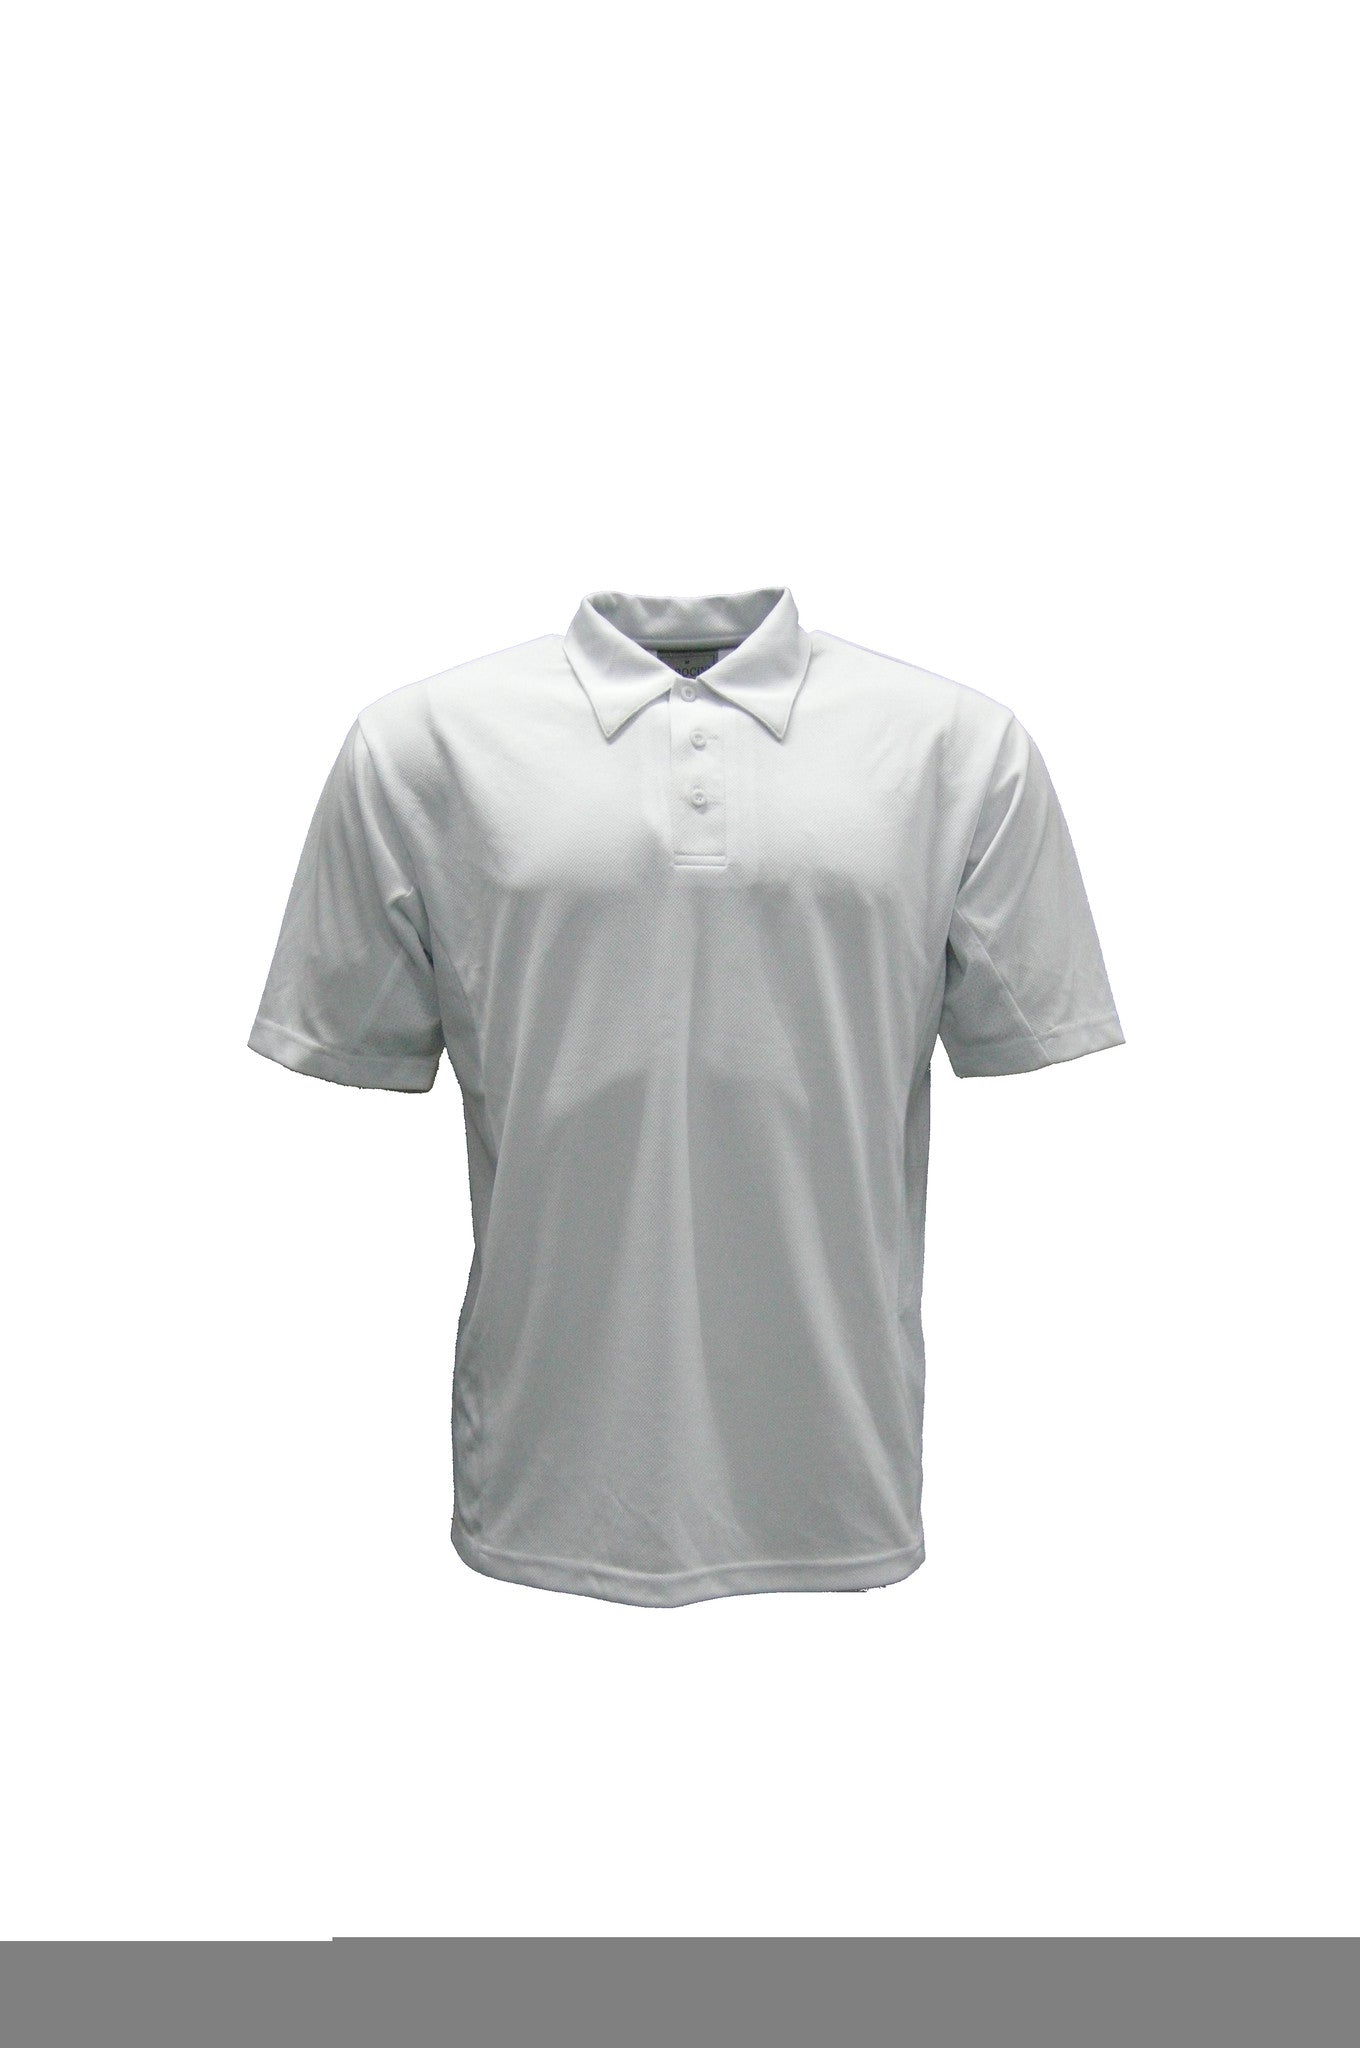 Cricket S/S Polo